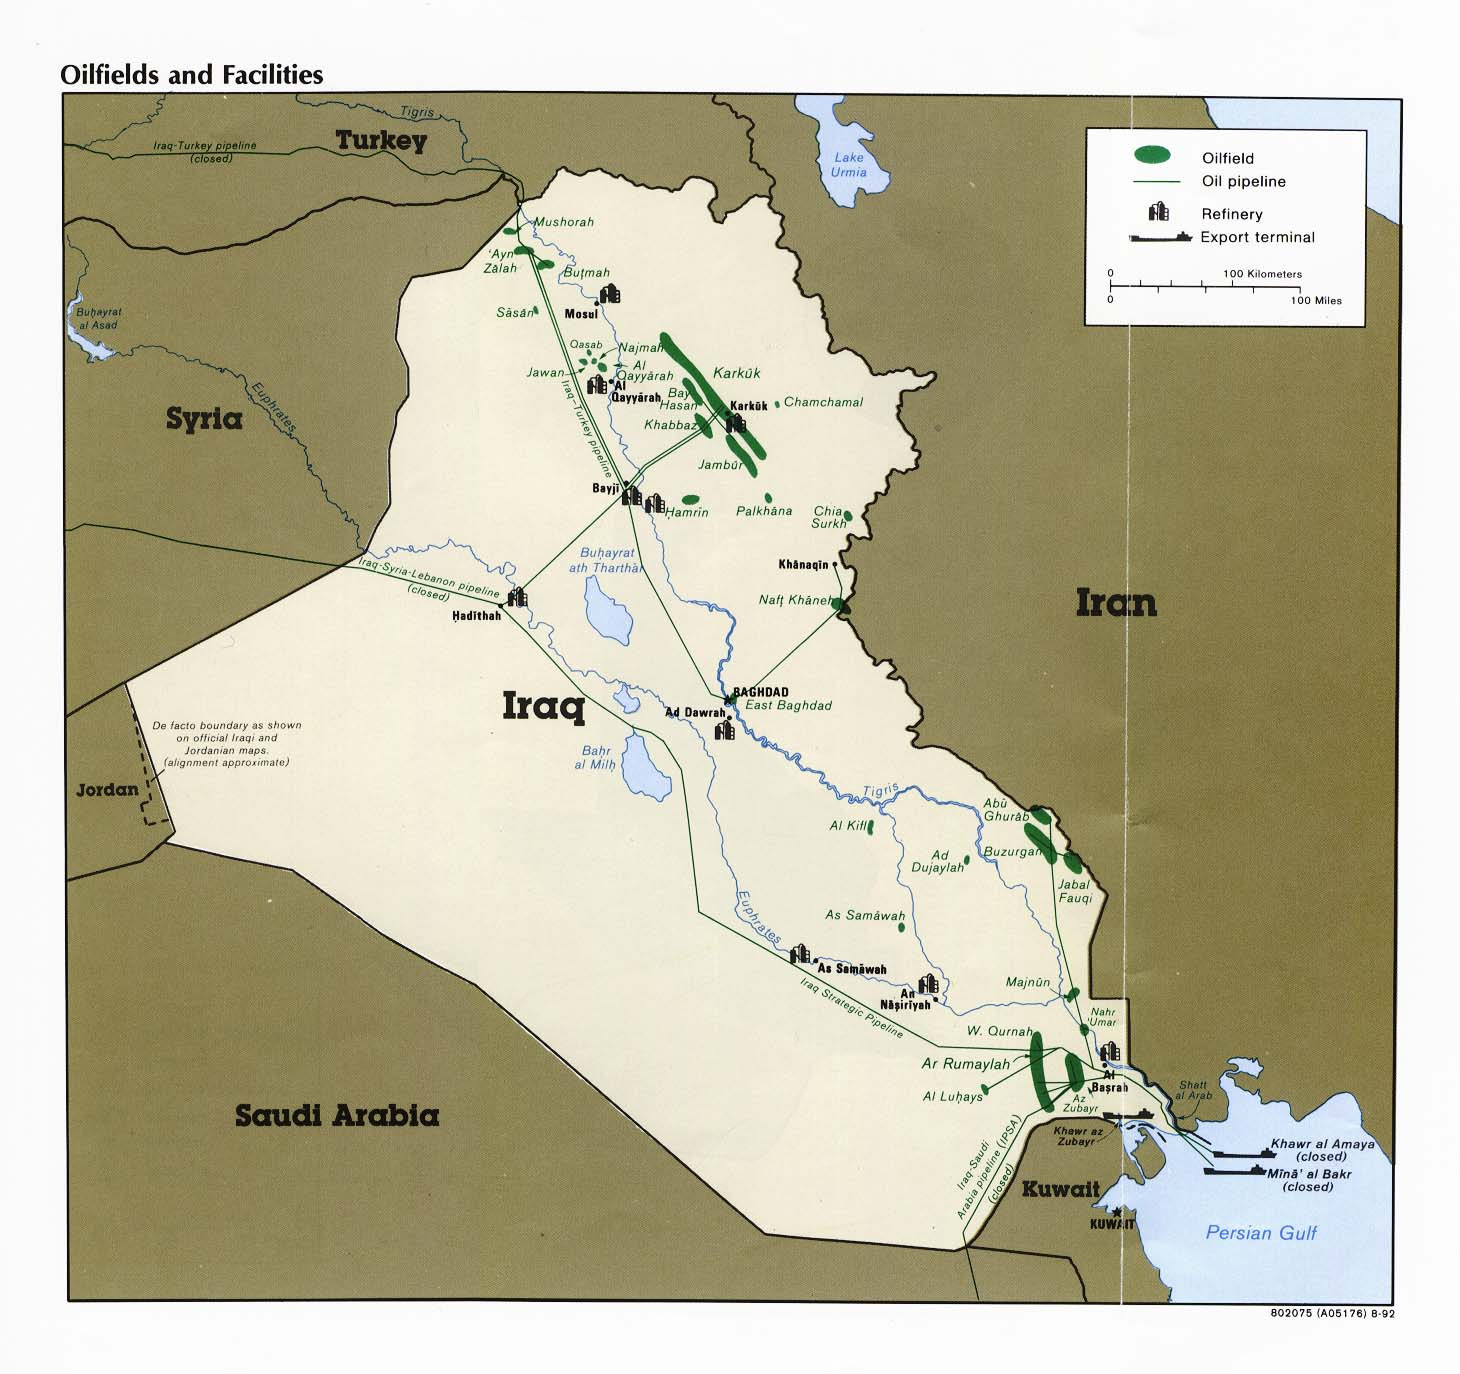 Download free world energy maps for alternative and renewable green iraq oilfields and facilities gumiabroncs Image collections